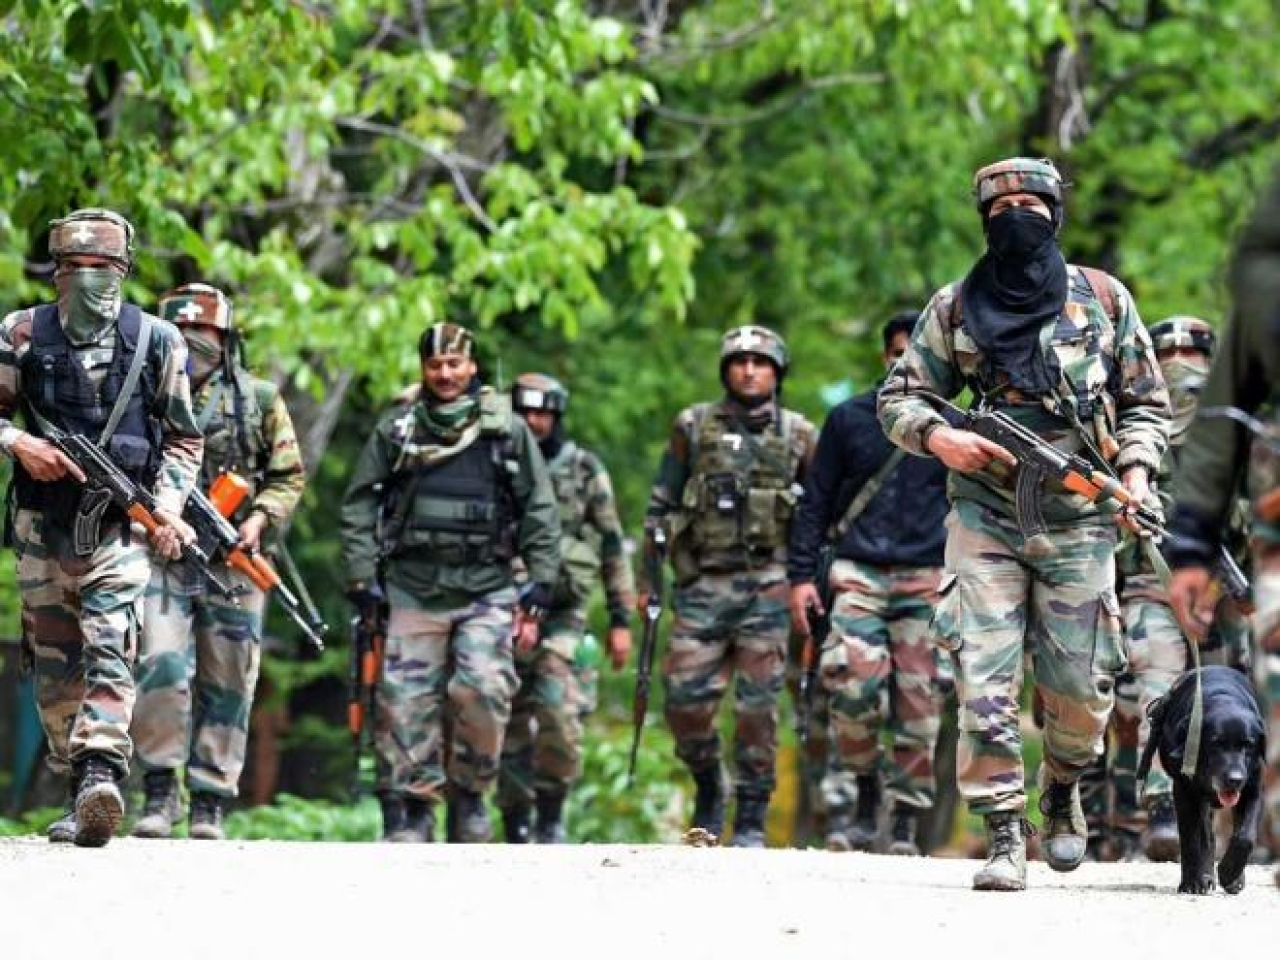 Indigenous Standard For Indian Army's Safety: India Gets Own Quality Mark For Bullet Proof Jackets